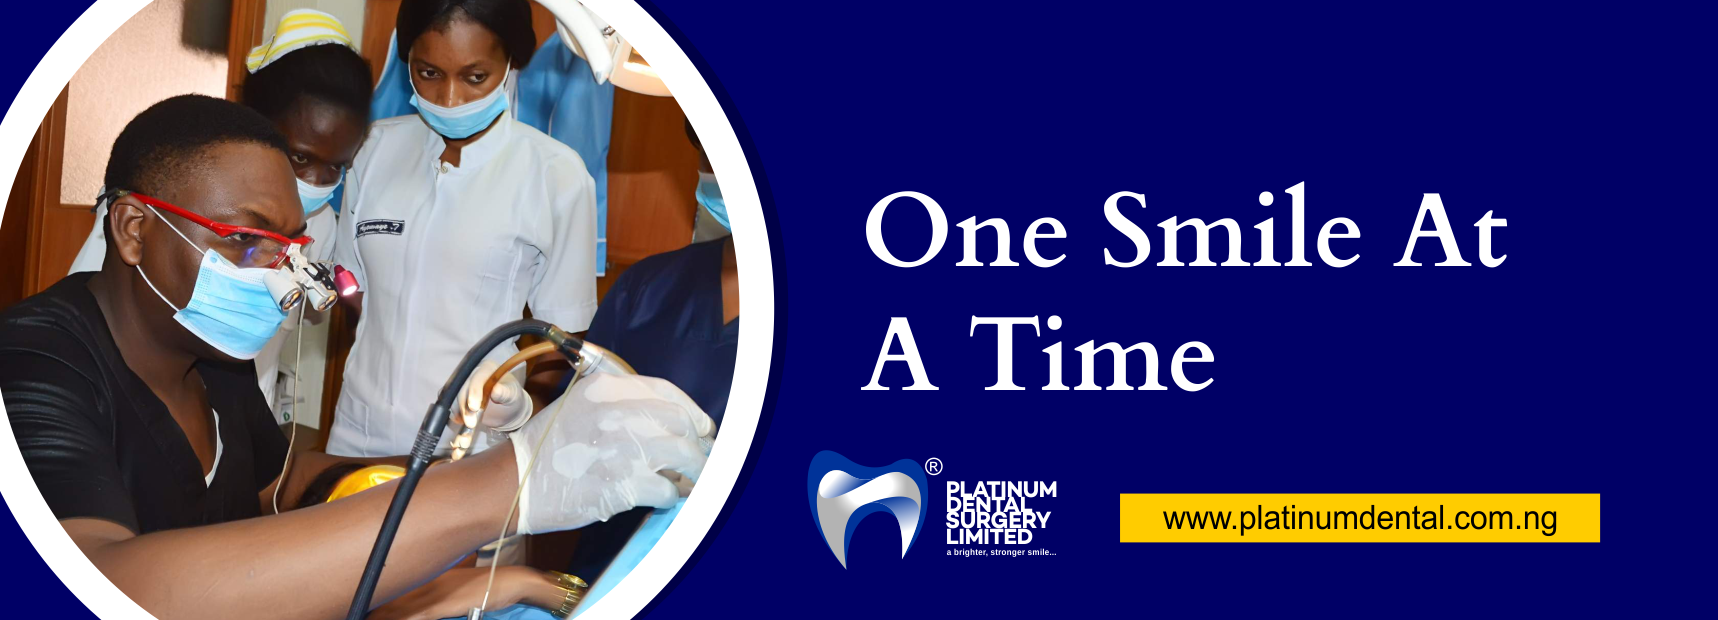 One Smile at a Time -Platinum Dental Surgery